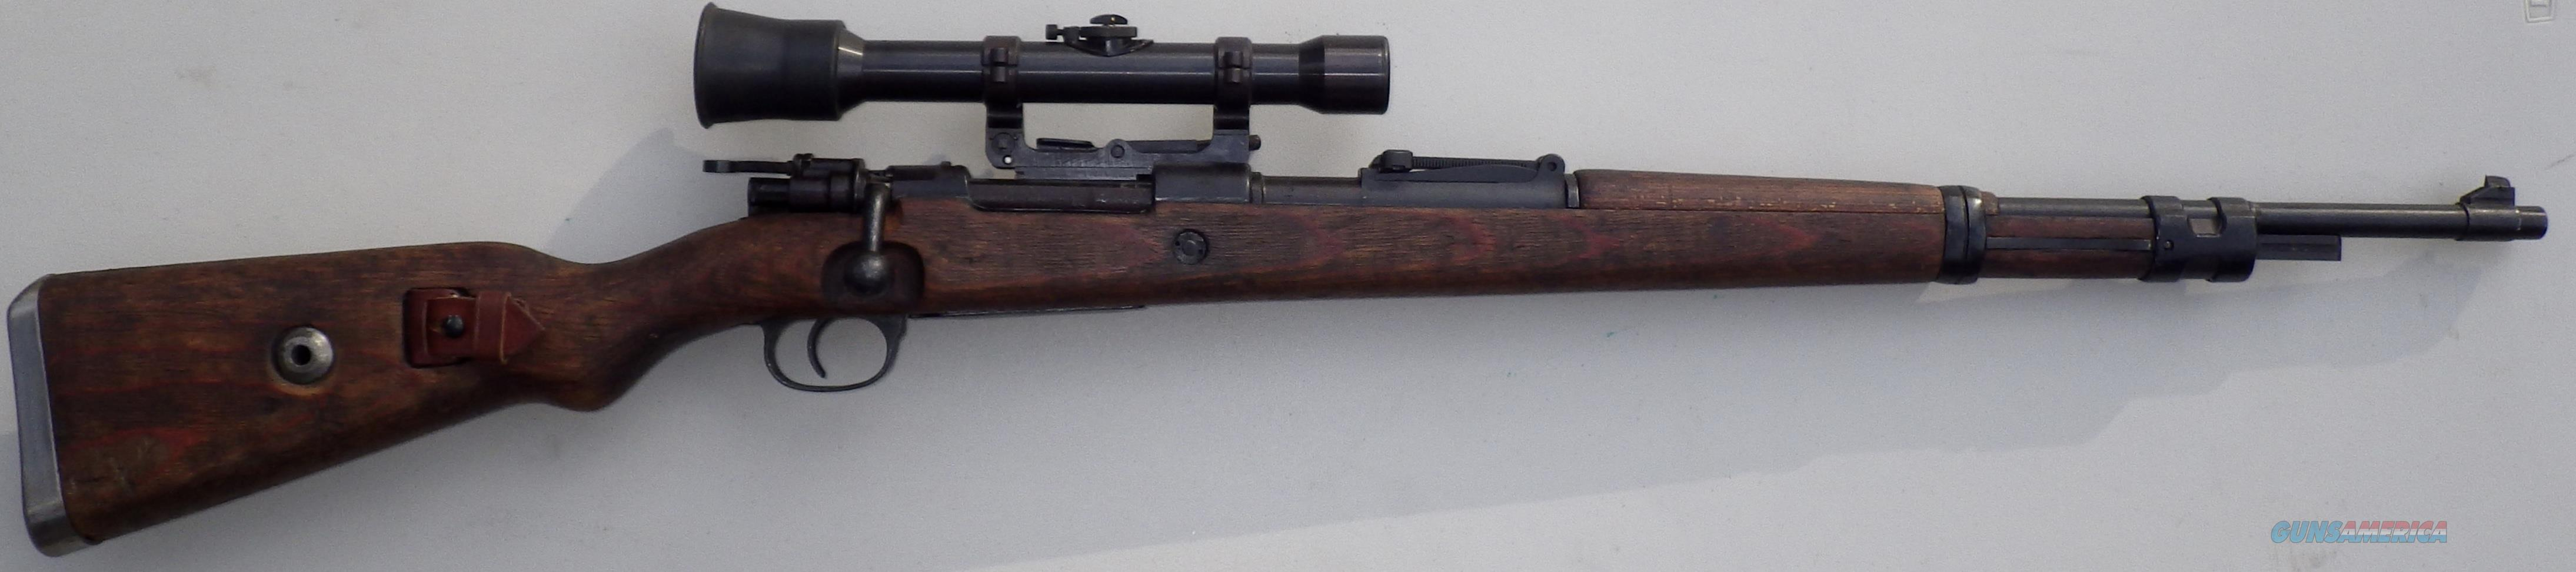 Mauser K98k ZF39 Sniper, reproduction with scope and extended safety